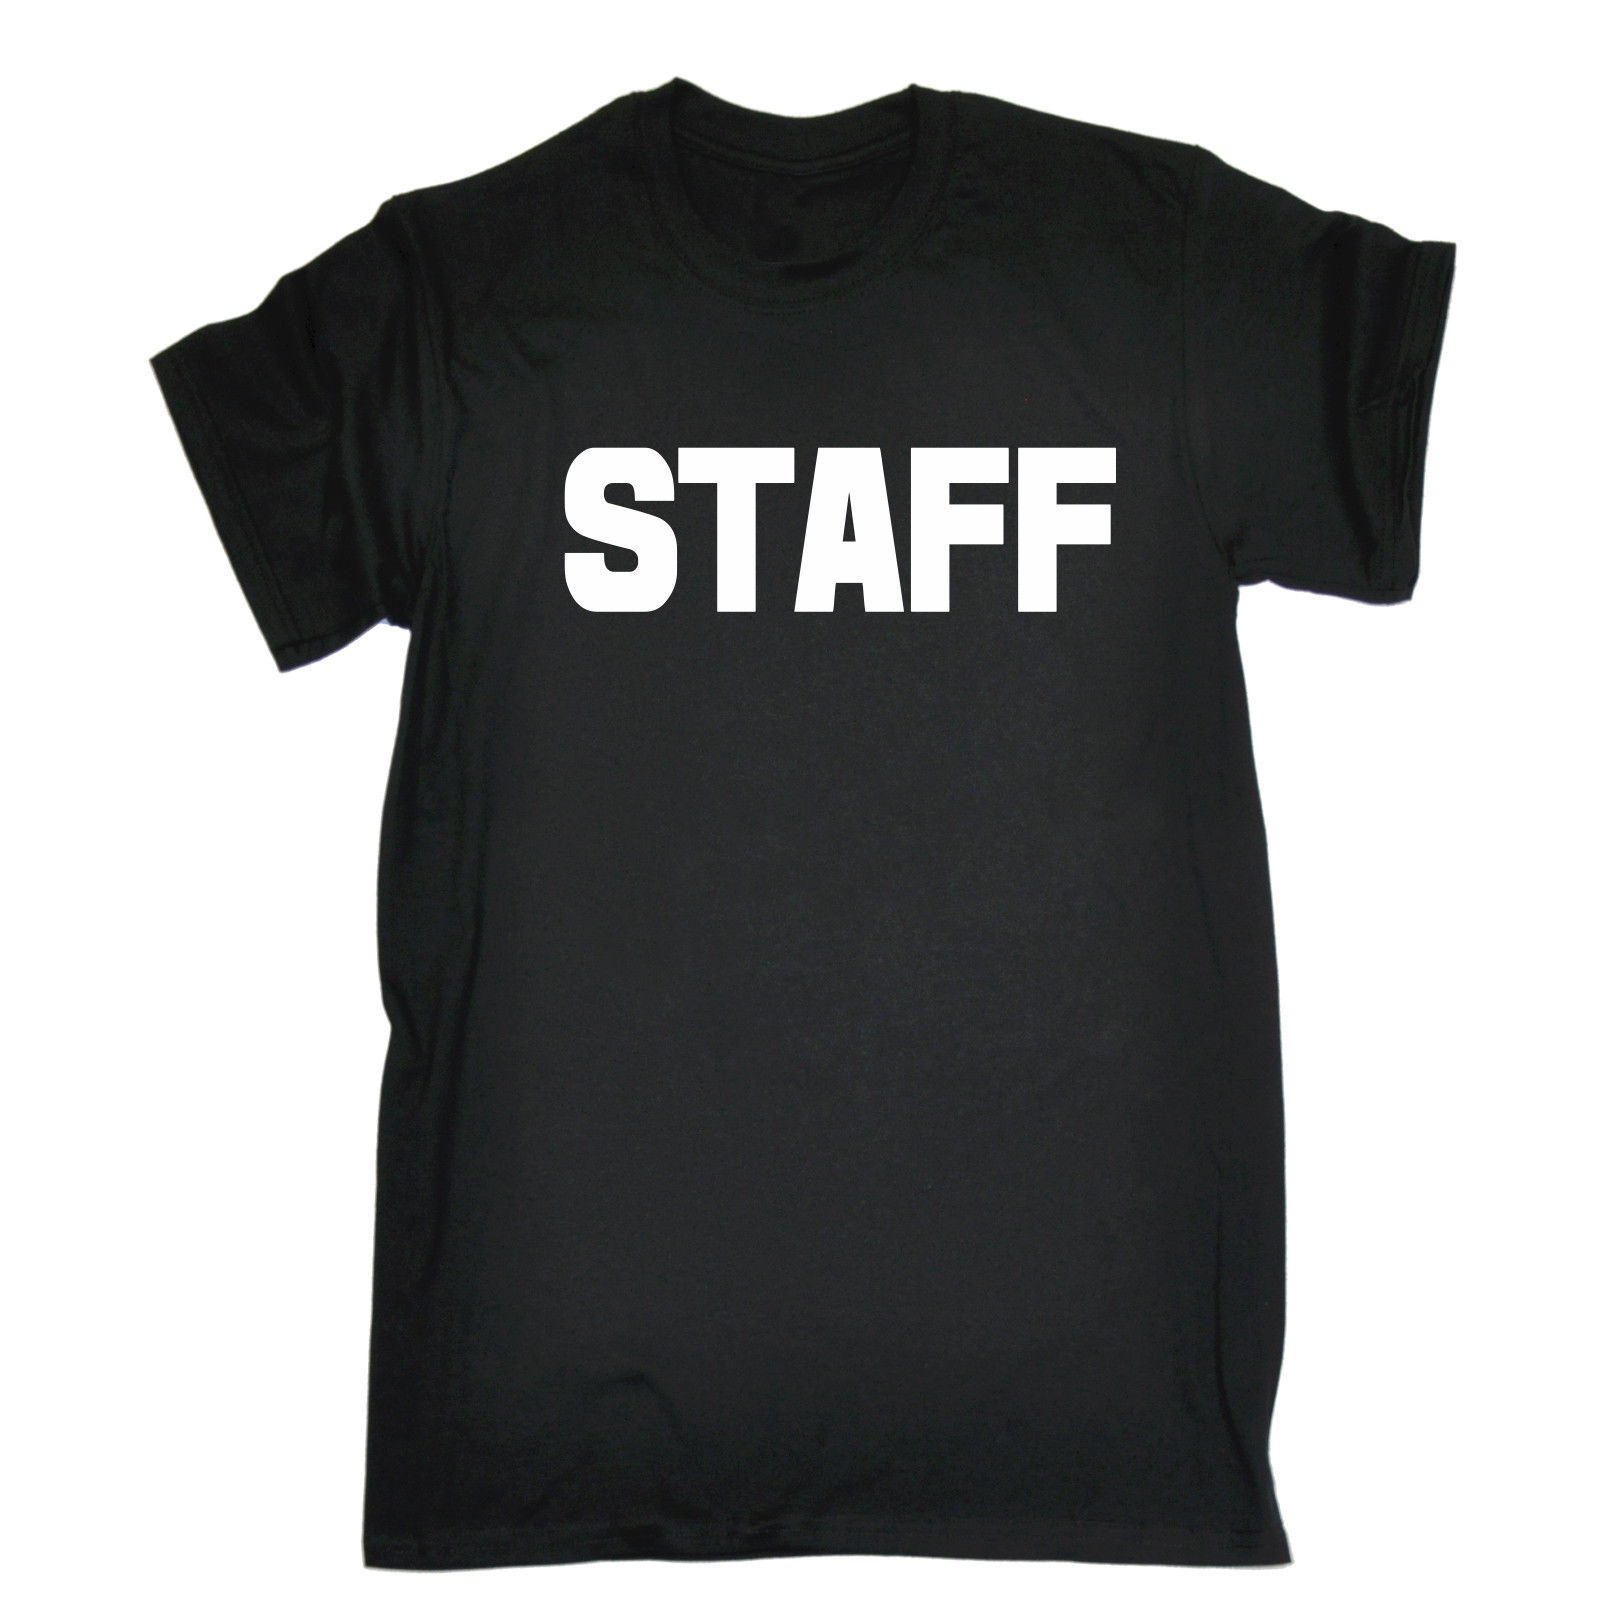 STAFF LARGE FRONT & BACK T SHIRT Work Uniform Workwear Bar Pub Birthday Gift Summer Short Sleeves Cotton T Shirt Fashion-in T-Shirts from Men's Clothing on AliExpress - 11.11_Double 11_Singles' Day 1